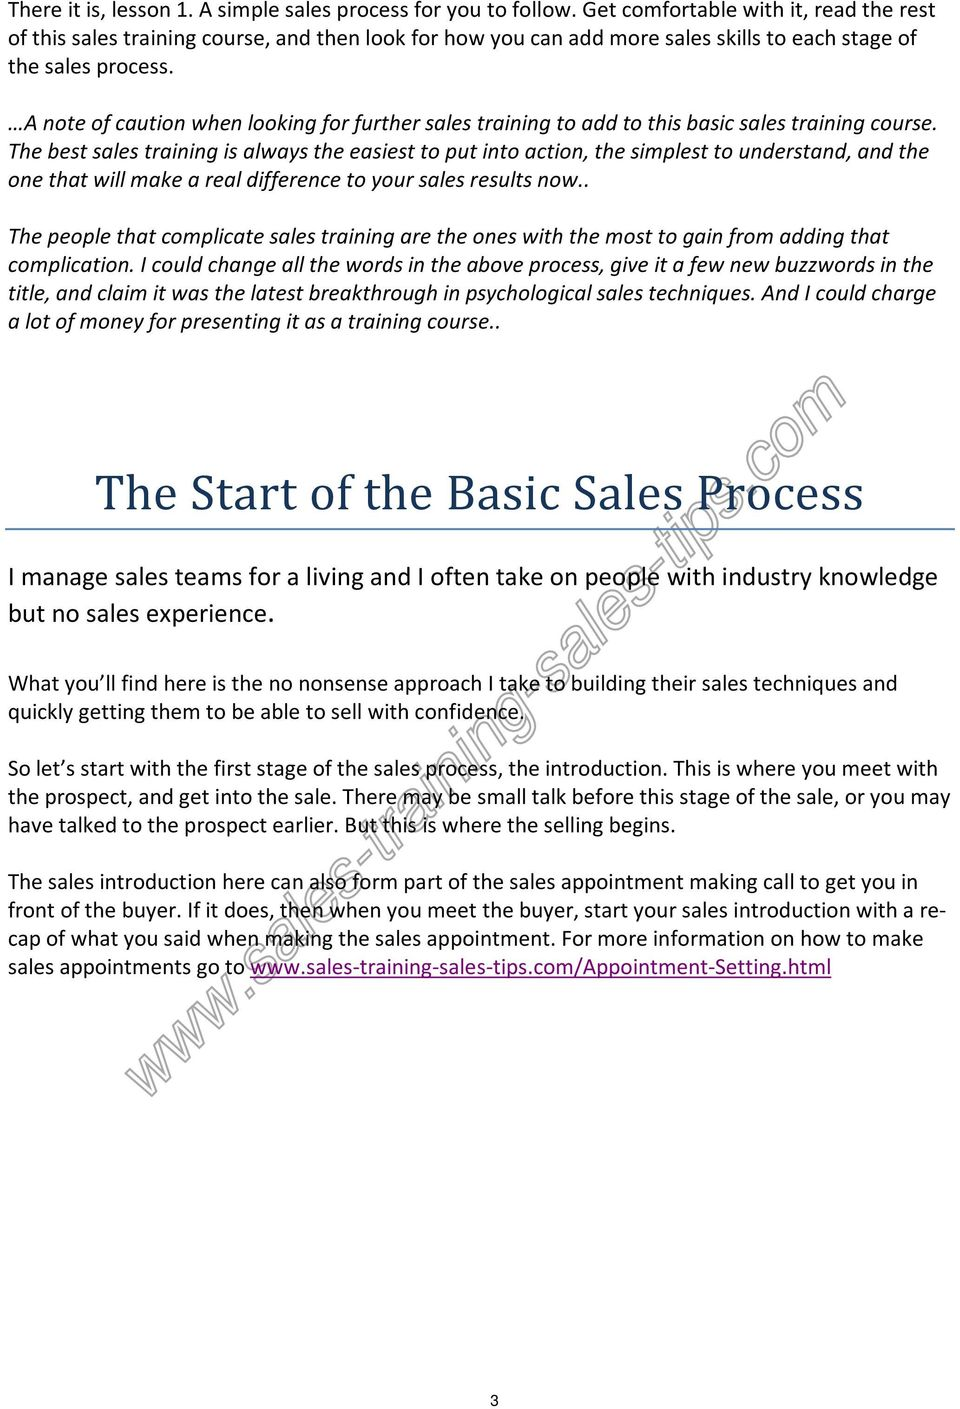 A note of caution when looking for further sales training to add to this basic sales training course.